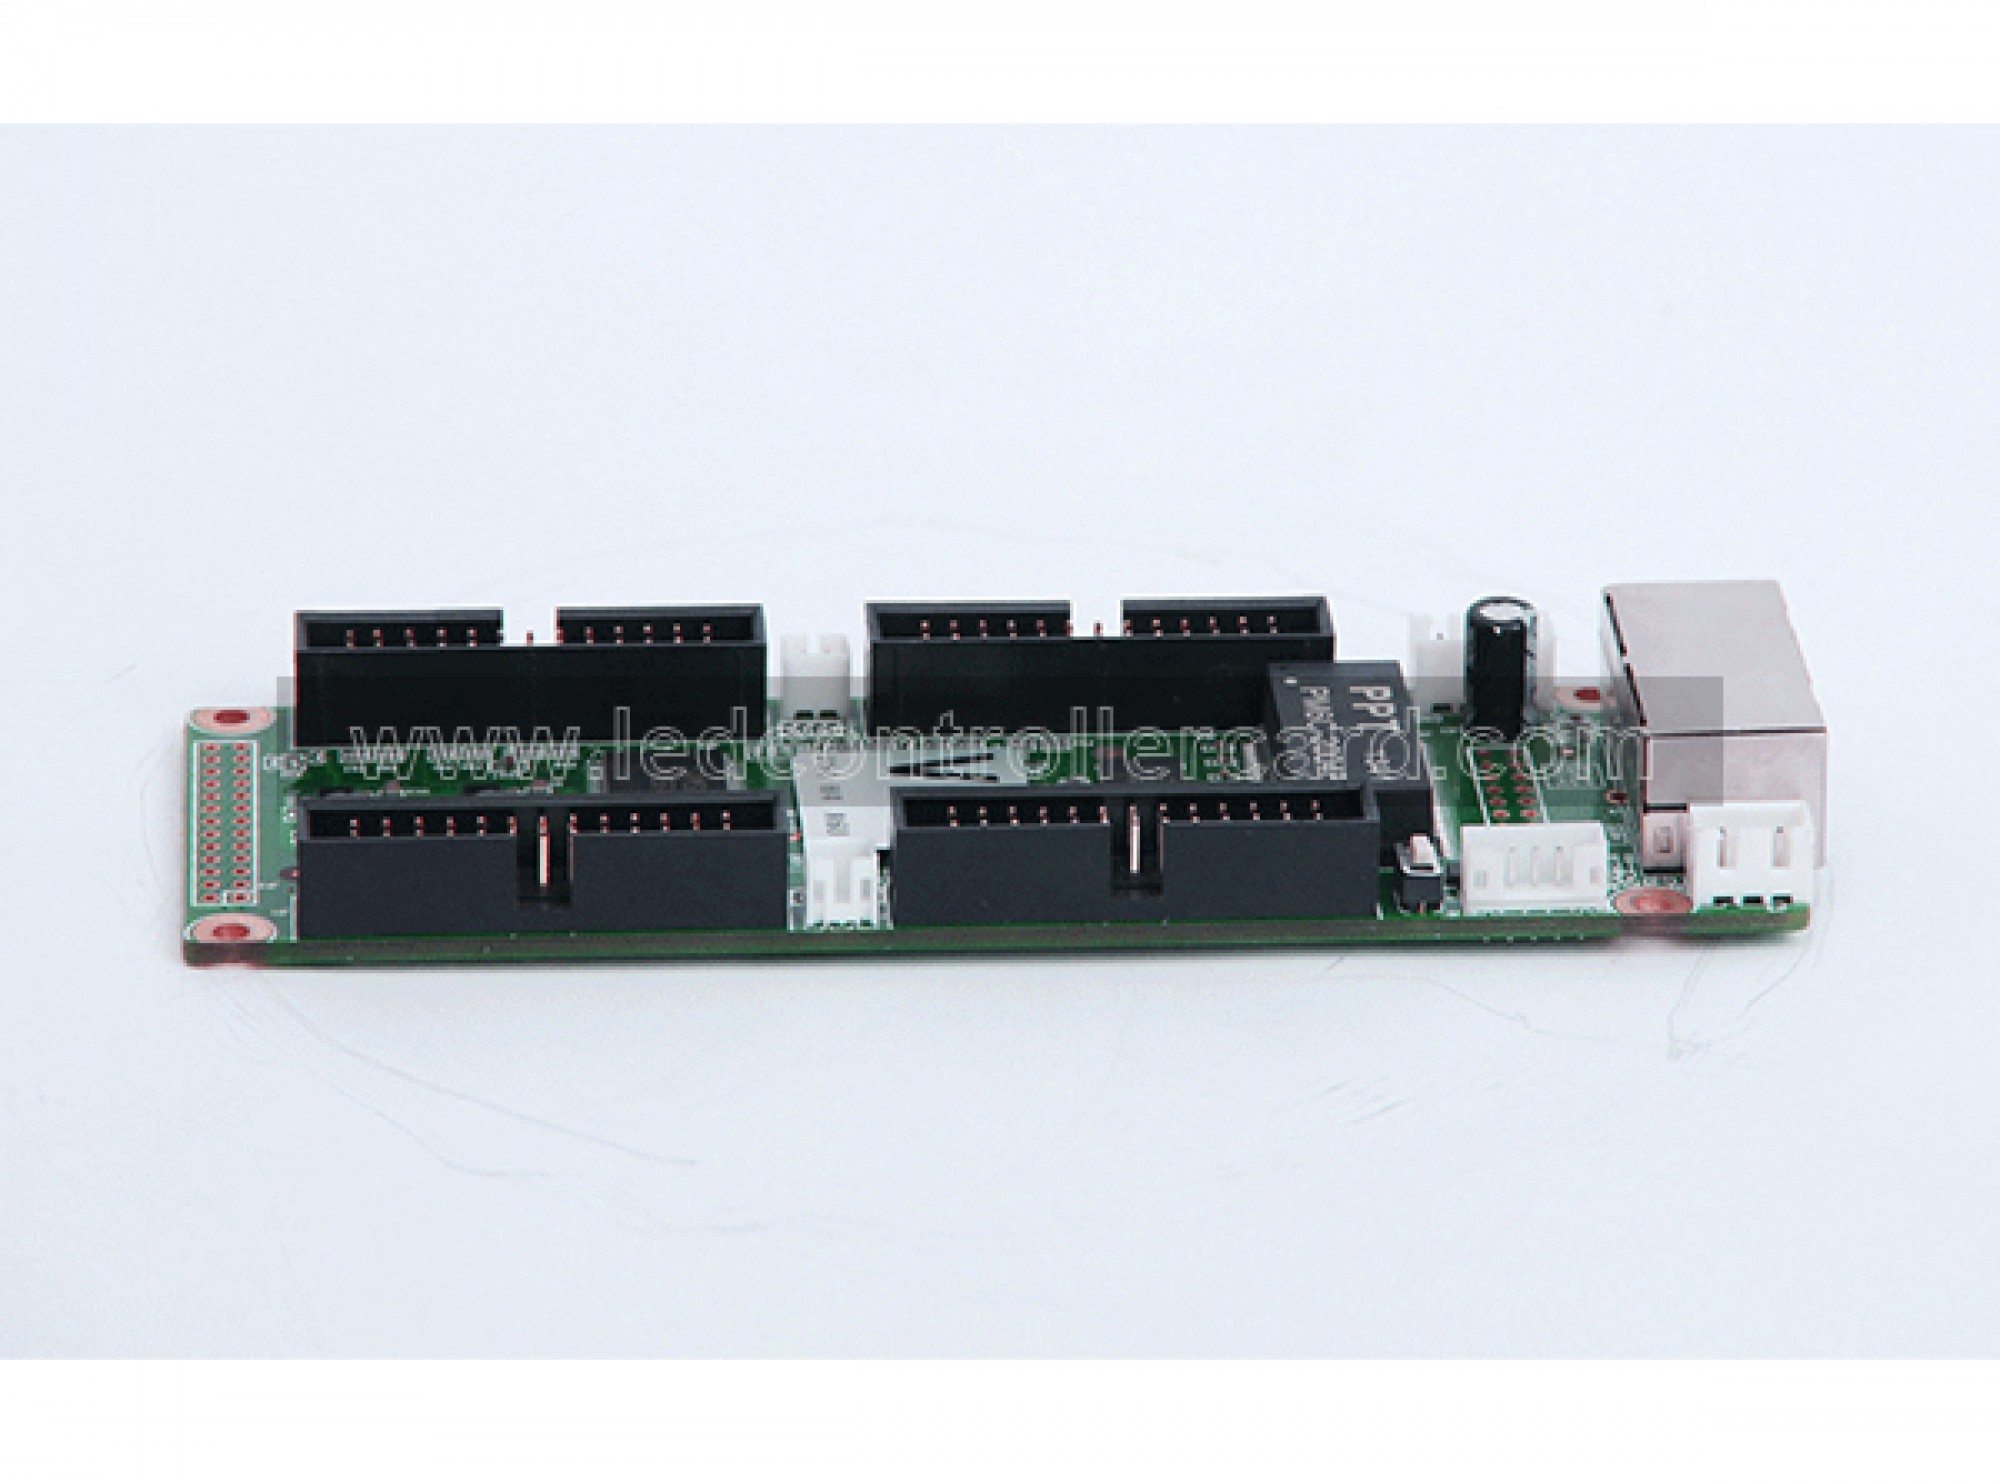 Mooncell VCSG3-V51 LED Receive Card